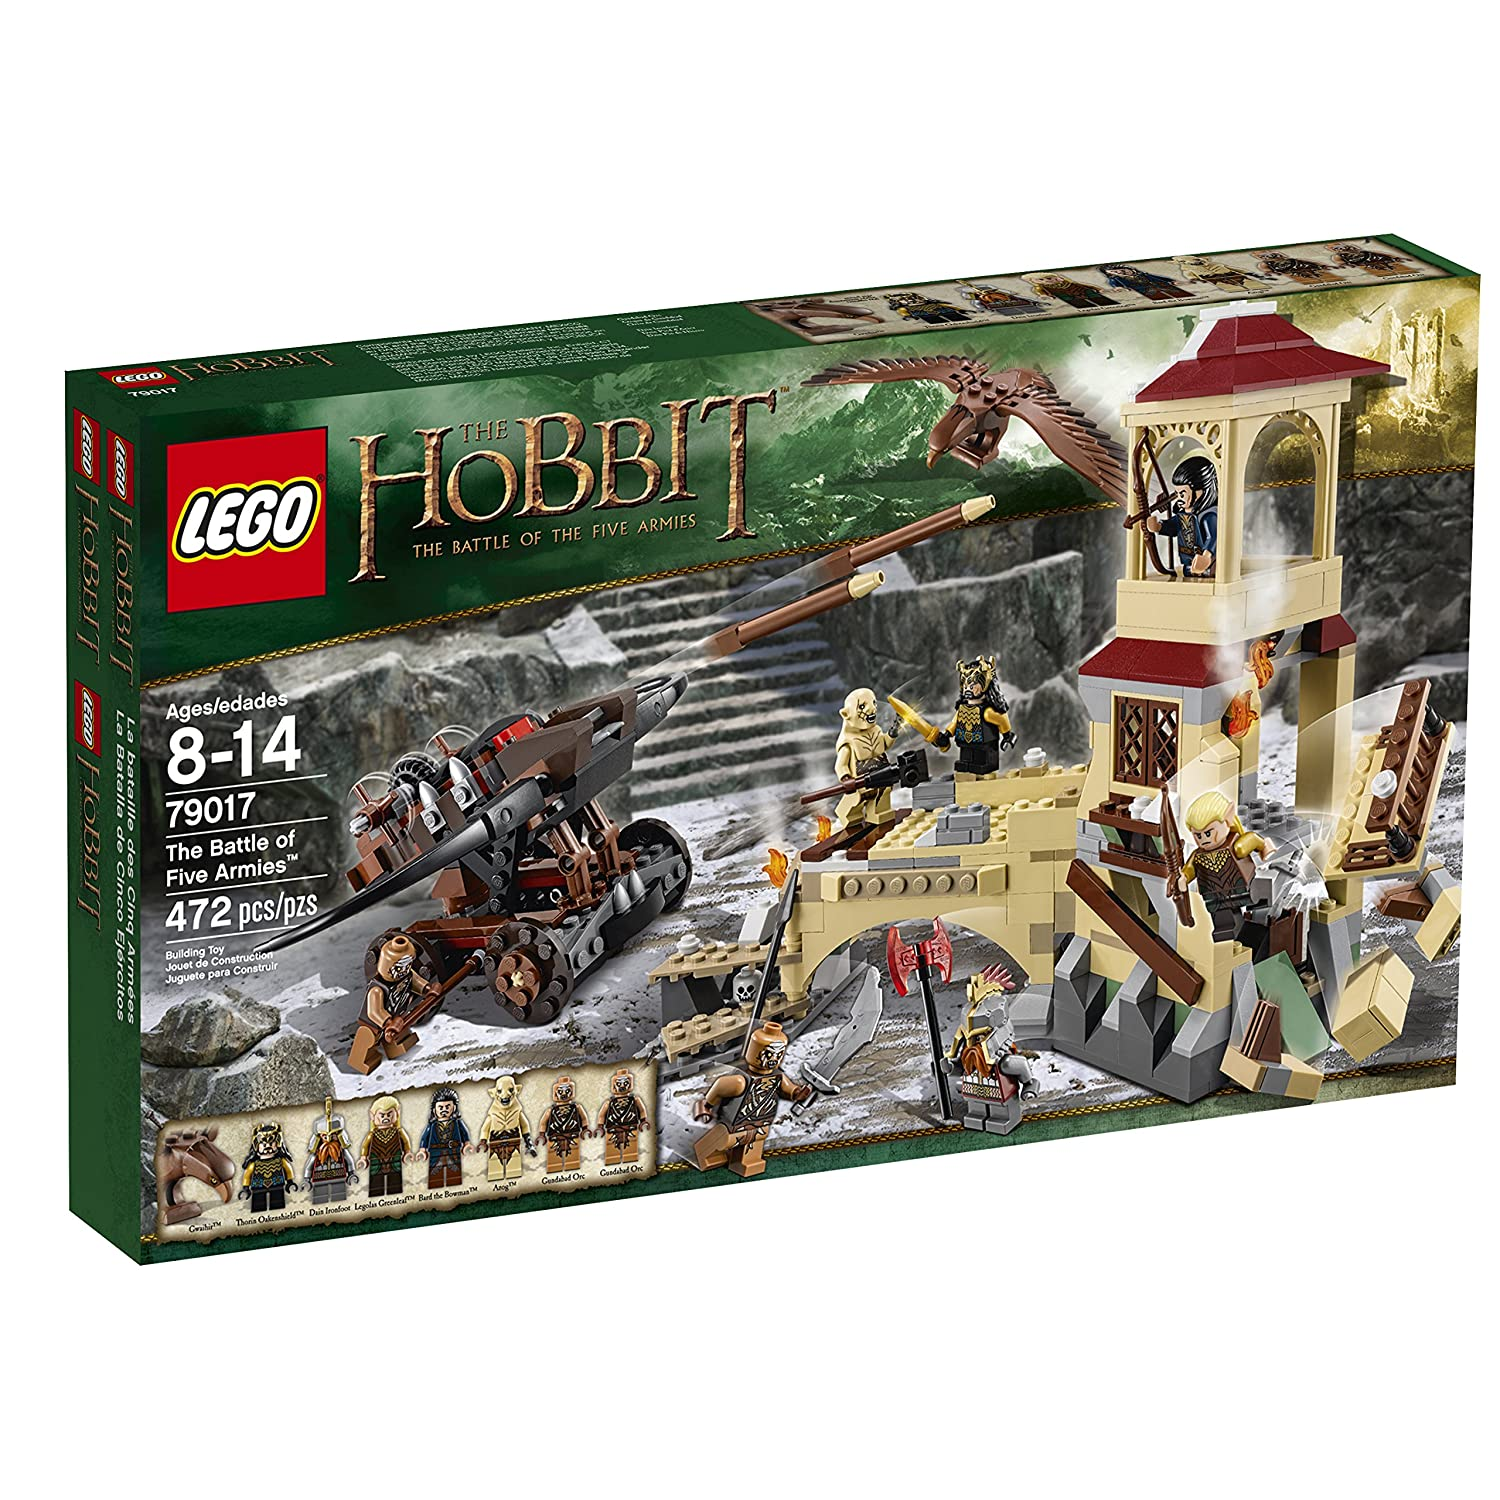 LEGO Hobbit 79017 The Battle of Five Armies Includes 7 minifigures with assorted weapons and accessories: Thorin Oakenshield, Dain Ironfoot, Legolas Greenleaf, Azog, Bard the Bowman and 2 Gundabad Orcs, plus a Gwaihir figure.